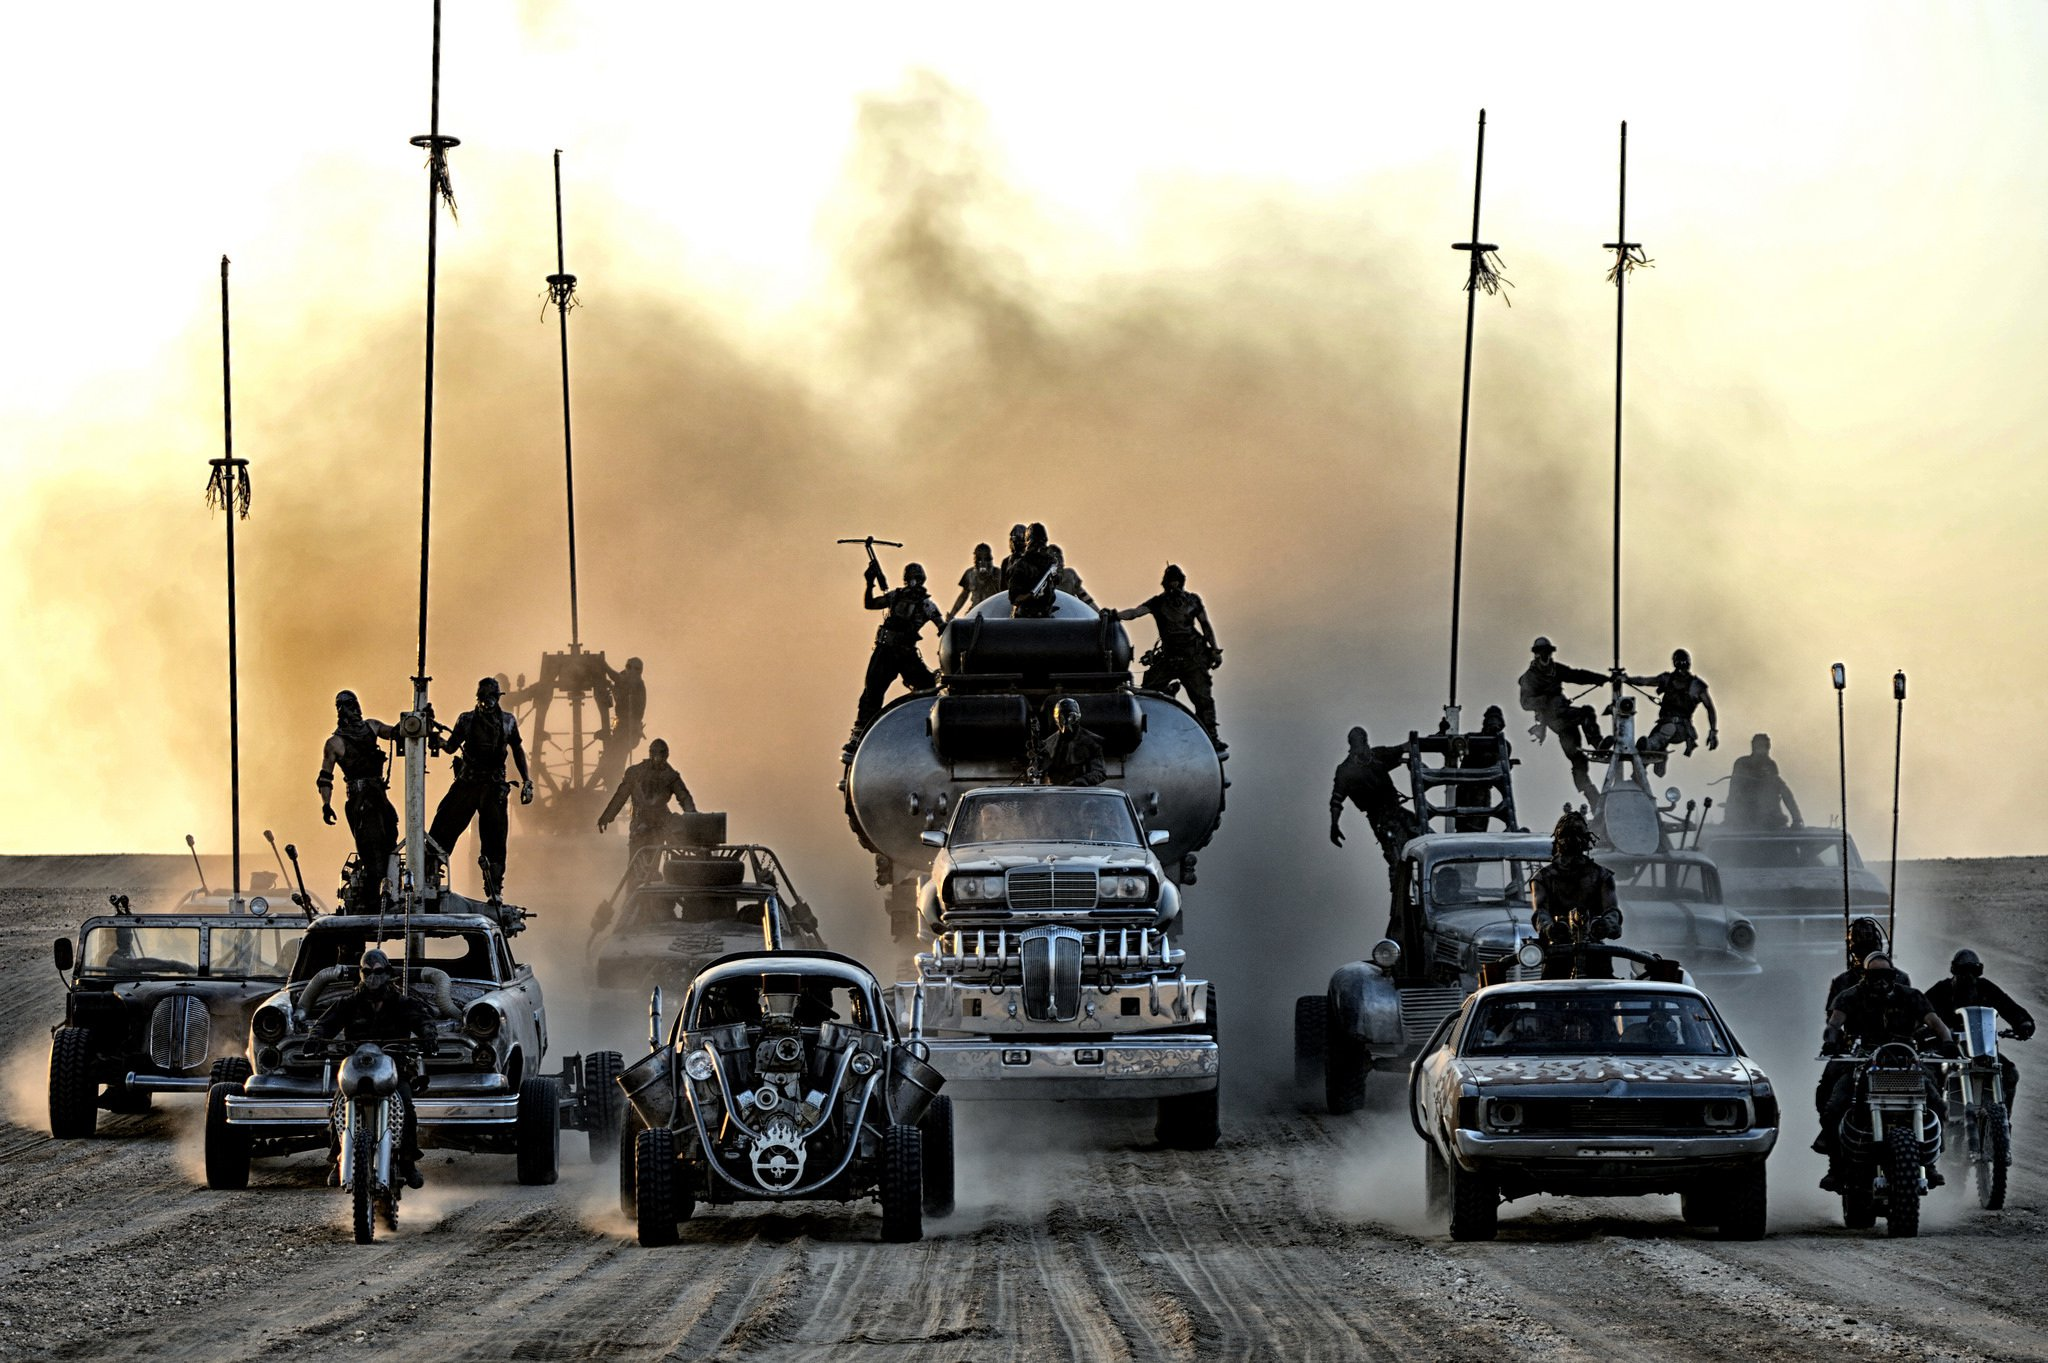 mad max a fury road hd wallpapers 2015 - all hd wallpapers